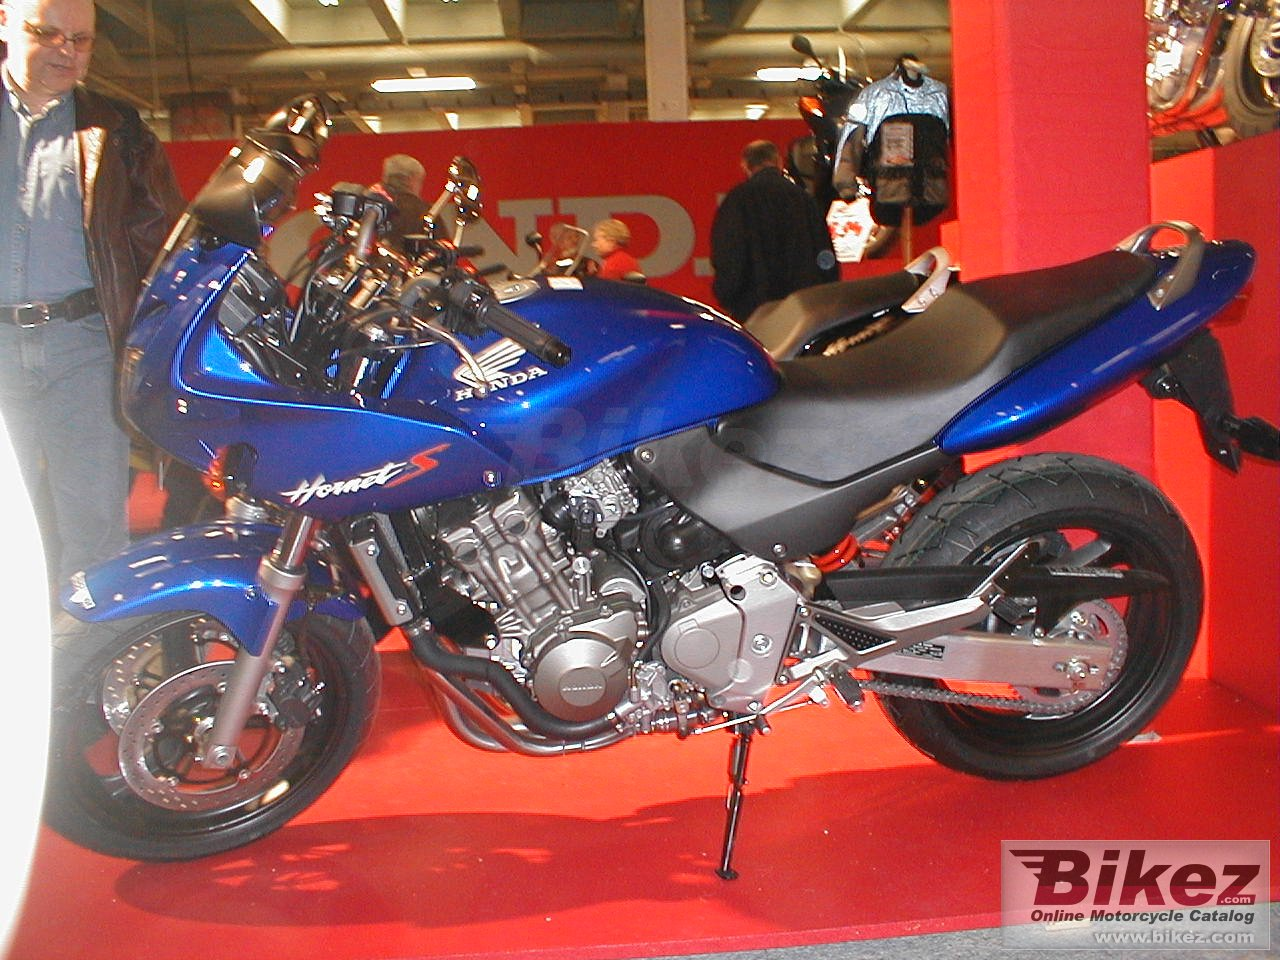 Big Harald Holm cb 600 s hornet-s picture and wallpaper from Bikez.com